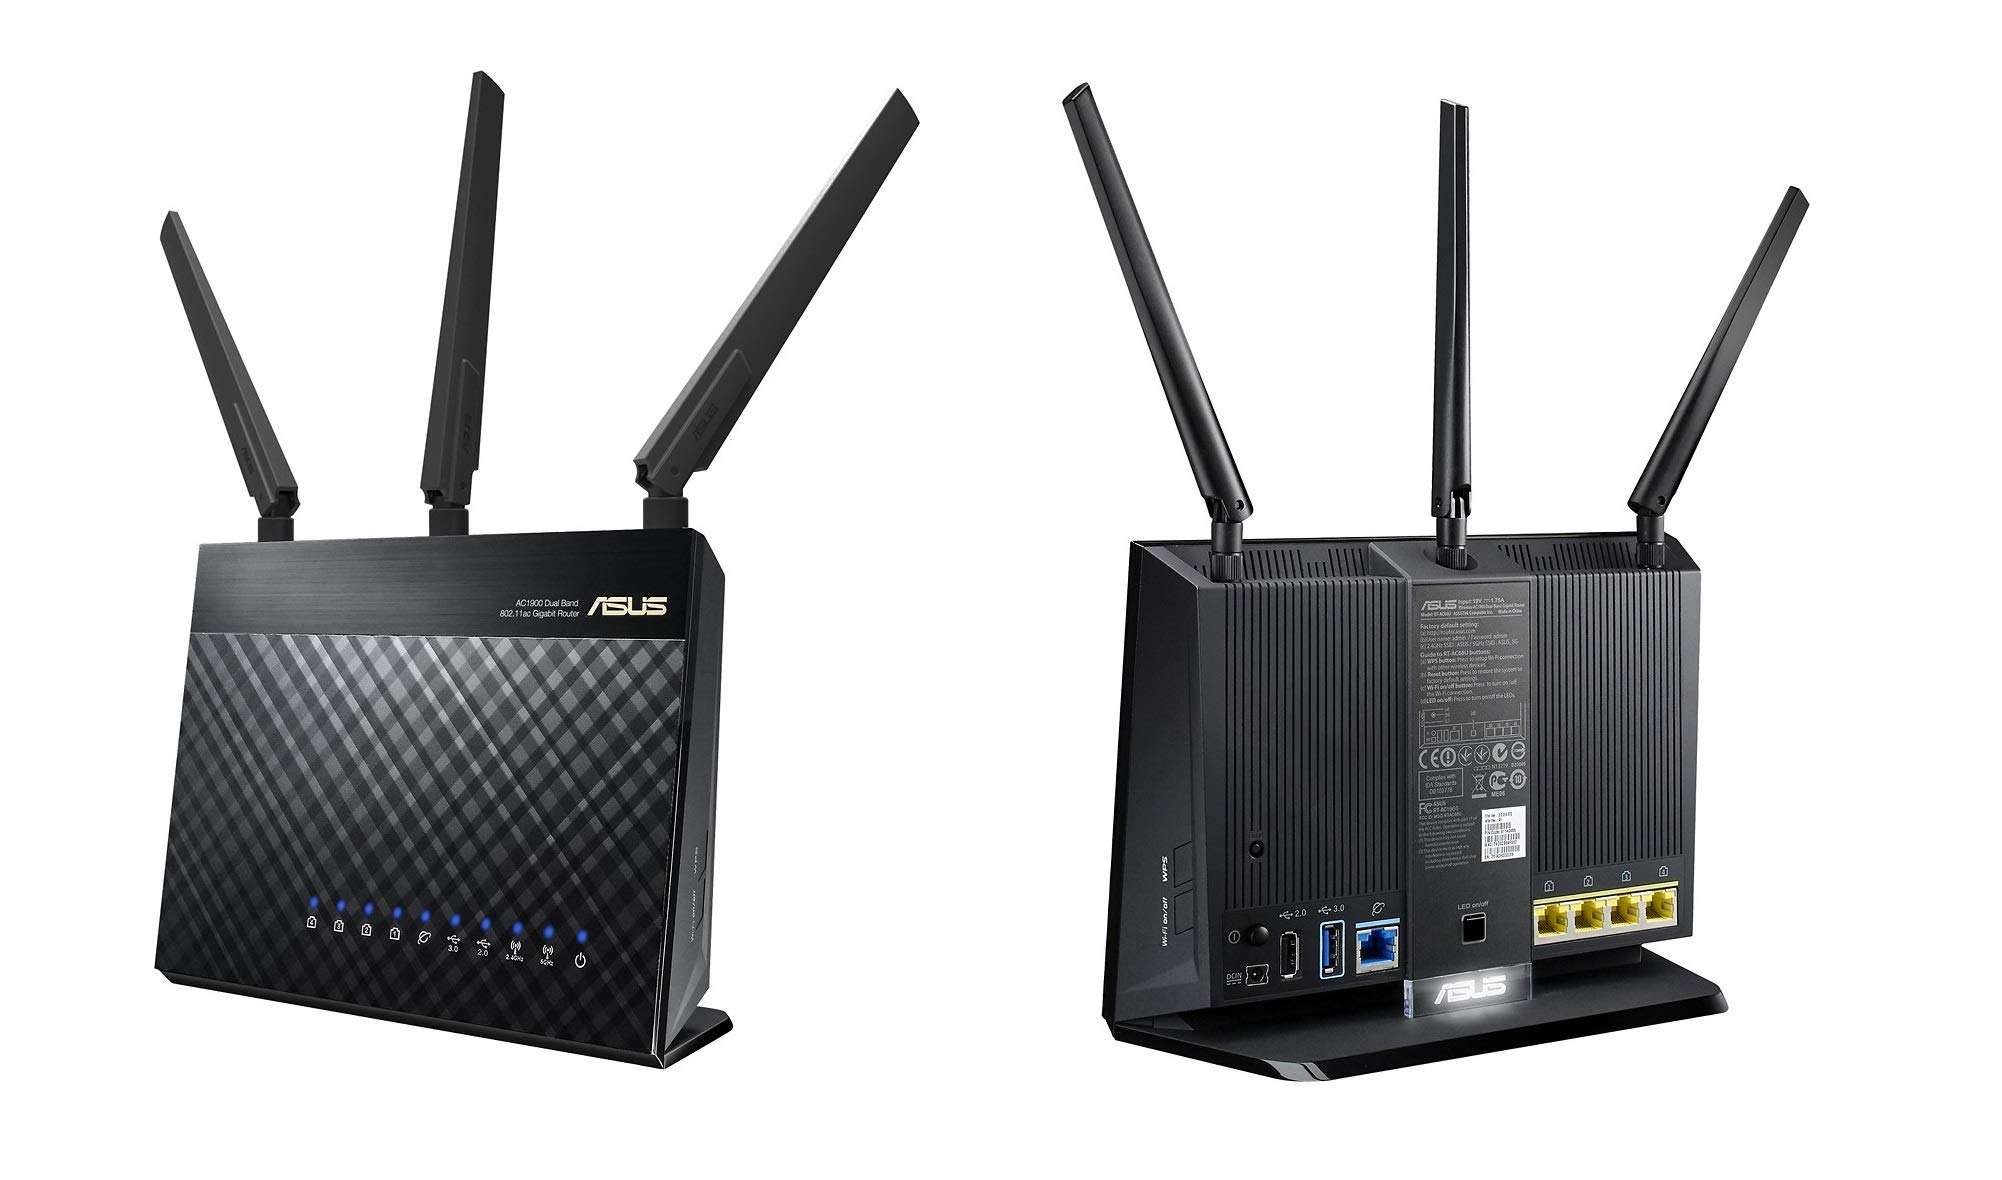 ASUS RT-AC1900P Router Dual-Band WiFi Router (Renewed) by ASUS